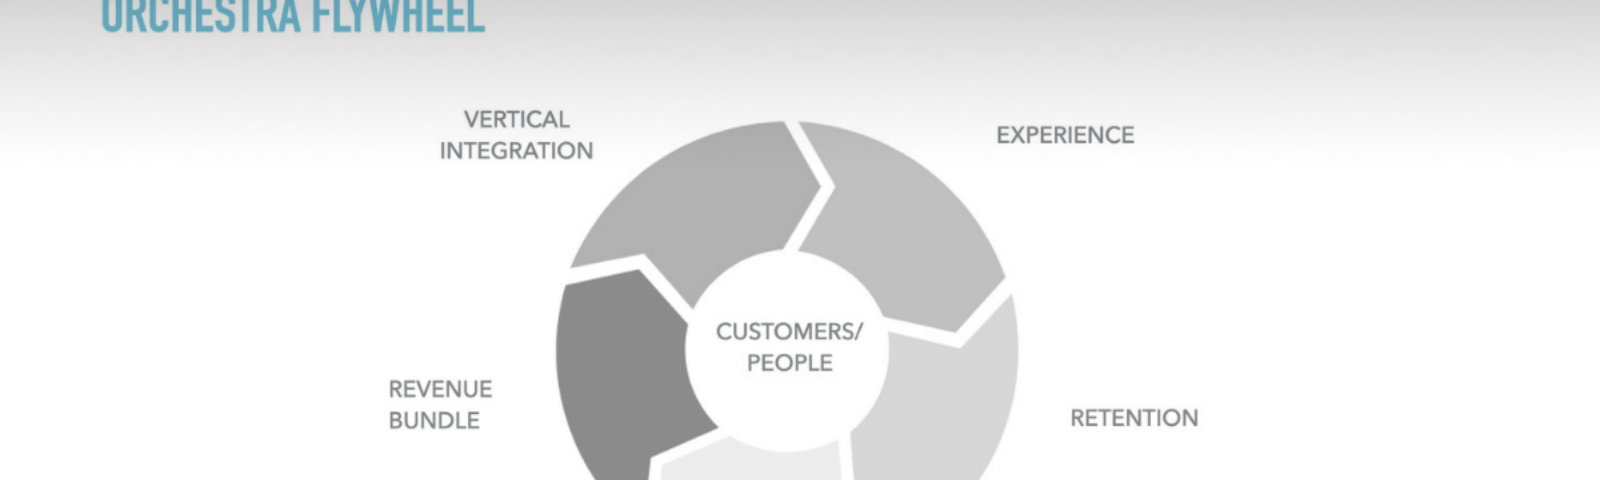 Flywheel with the customer at the center and five parts surrounding it: experience, retention, representation, revenue bundle, vertical intergration